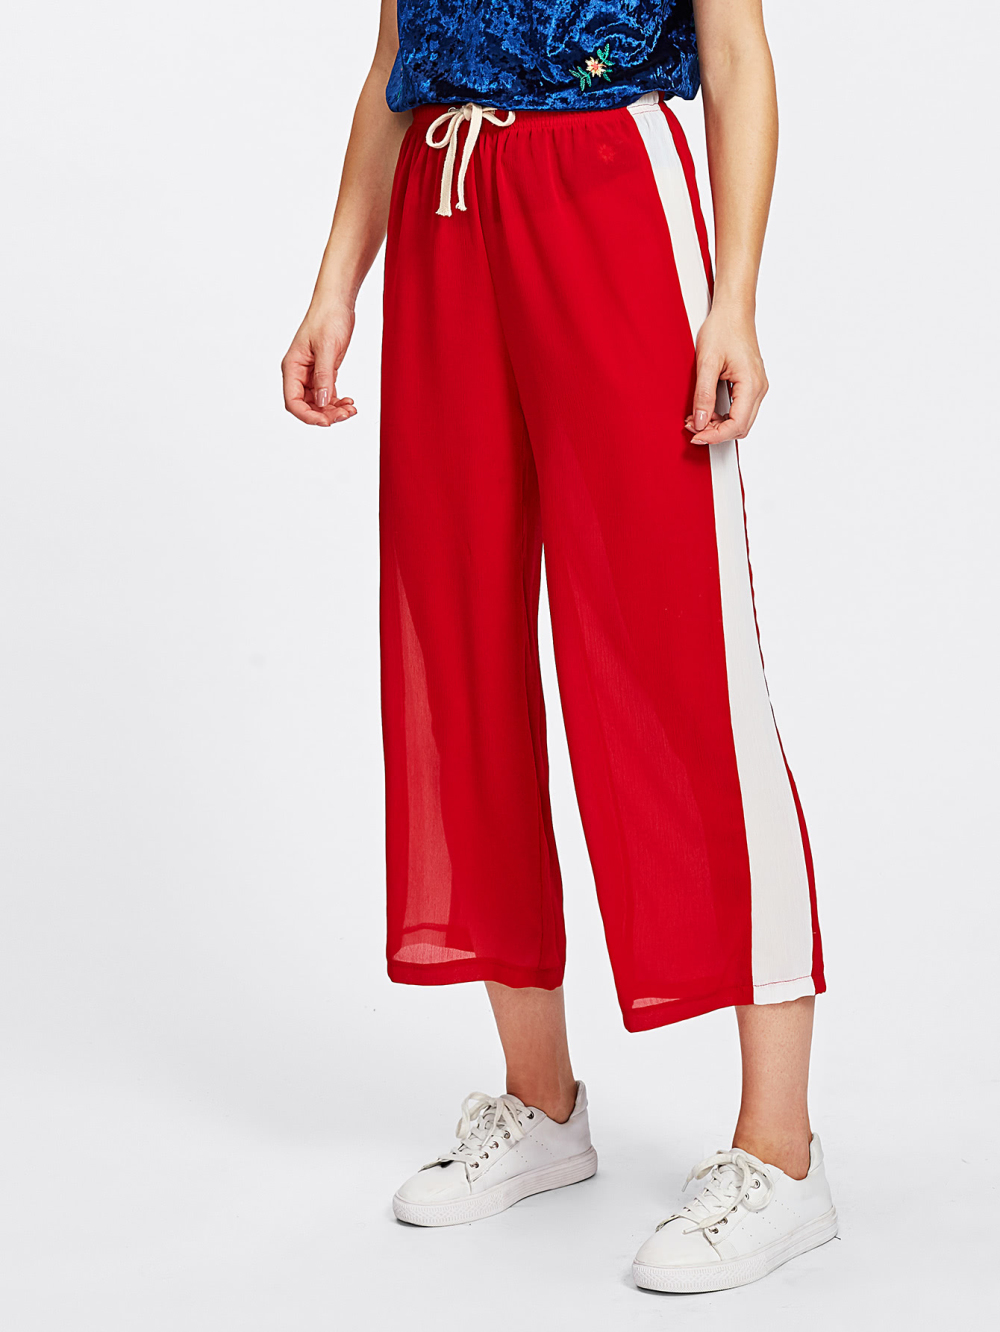 White Striped   Wide     Leg     Pants   Loose Trousers For Women Baggy Bottoms Girls Long Crop   Pants   Casual Loose   Pants   Black Red